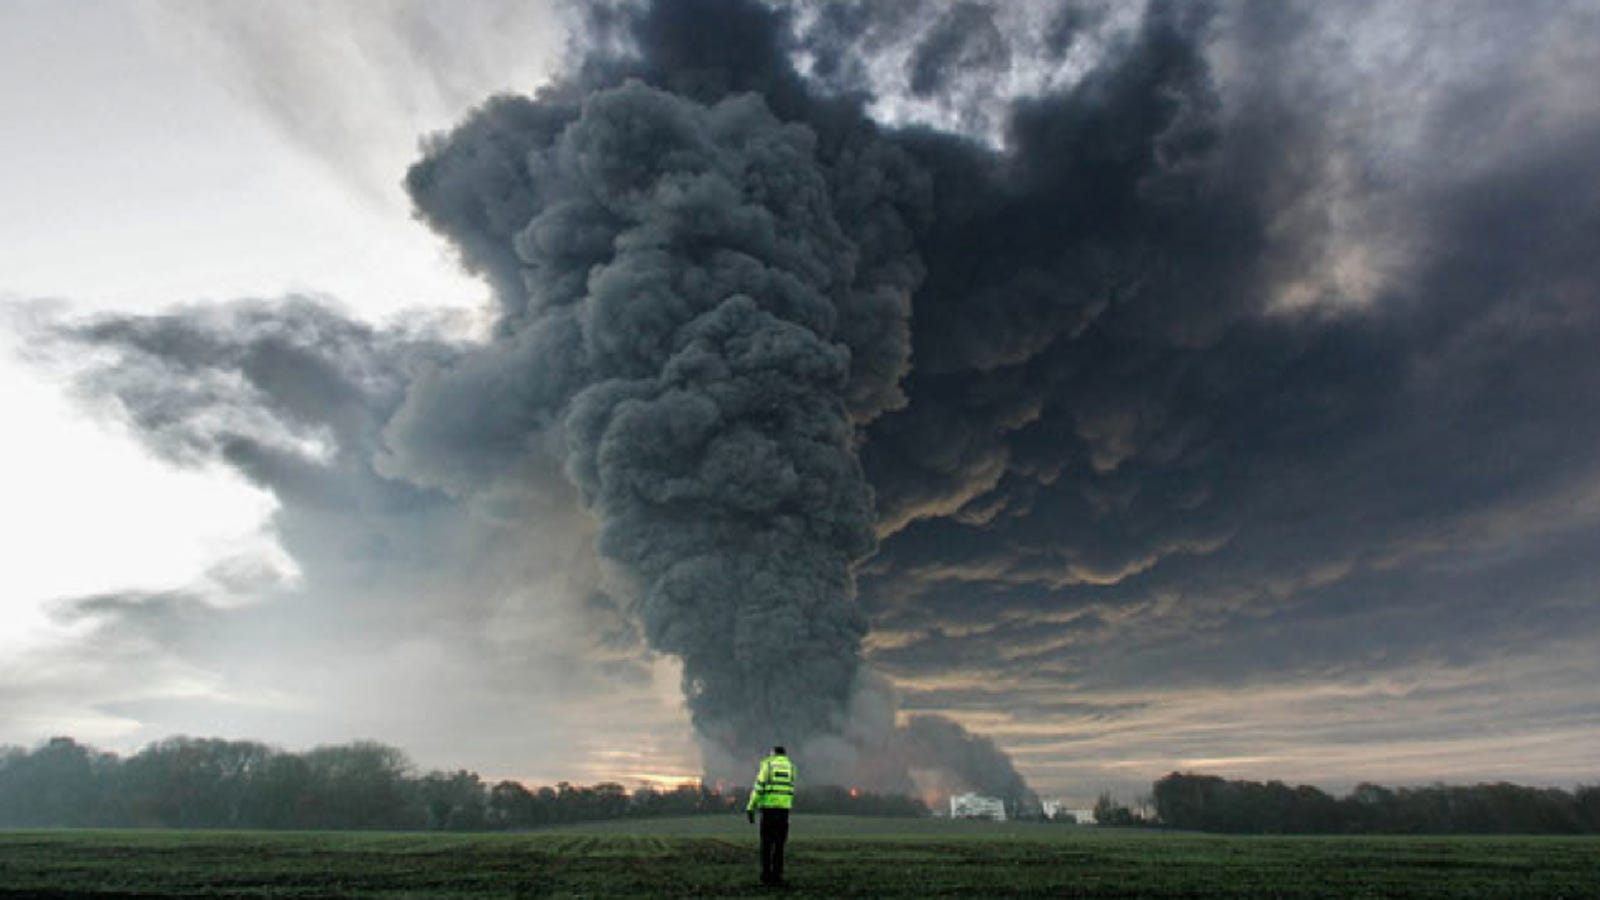 One of history's most violent explosions may have been caused by trees